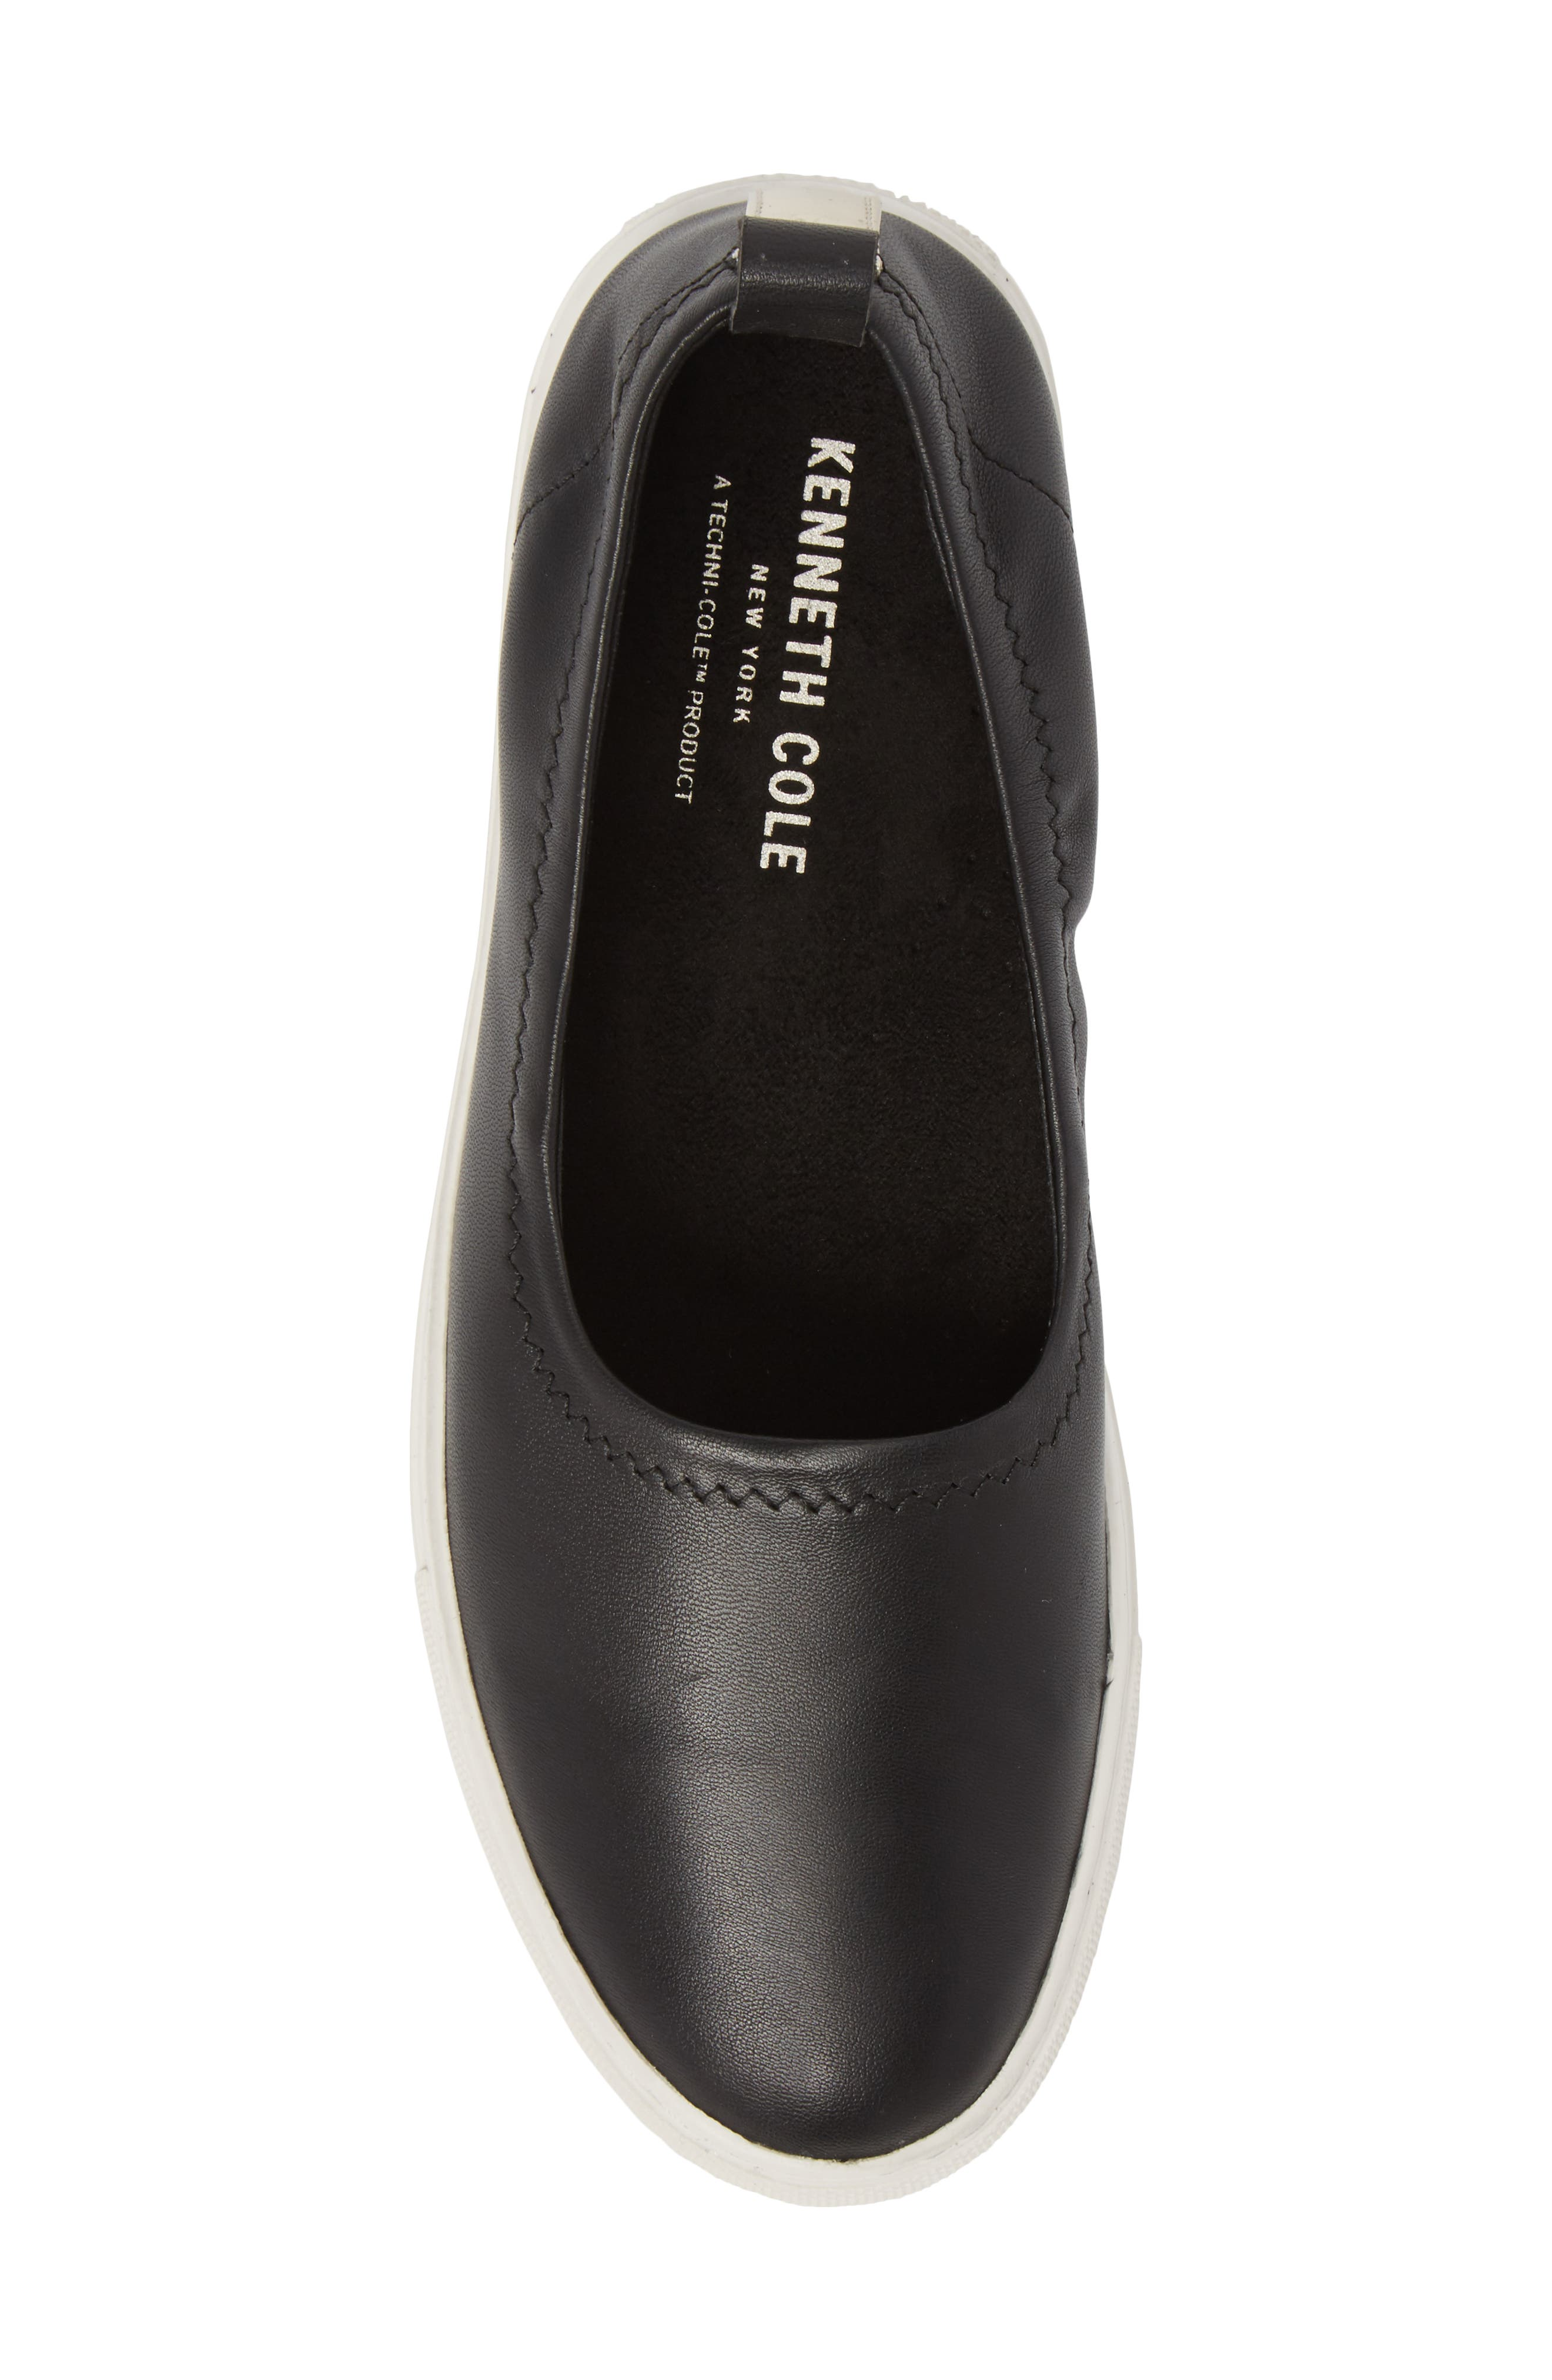 KENNETH COLE NEW YORK,                             Kam Techni-Cole Ballet Flat,                             Alternate thumbnail 5, color,                             001